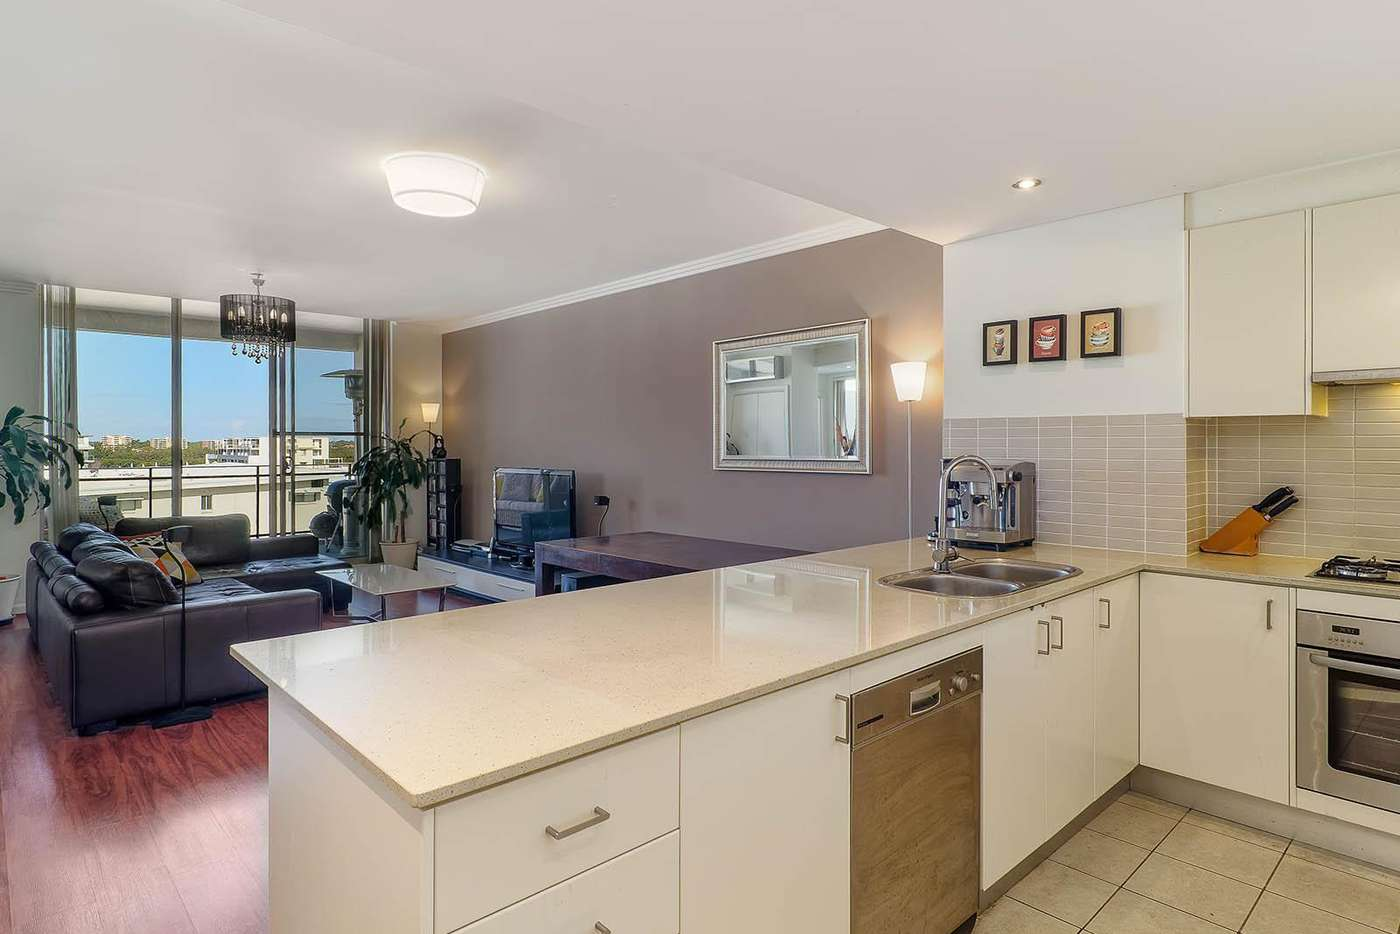 Main view of Homely apartment listing, 802/1 Stromboli Strait, Wentworth Point NSW 2127